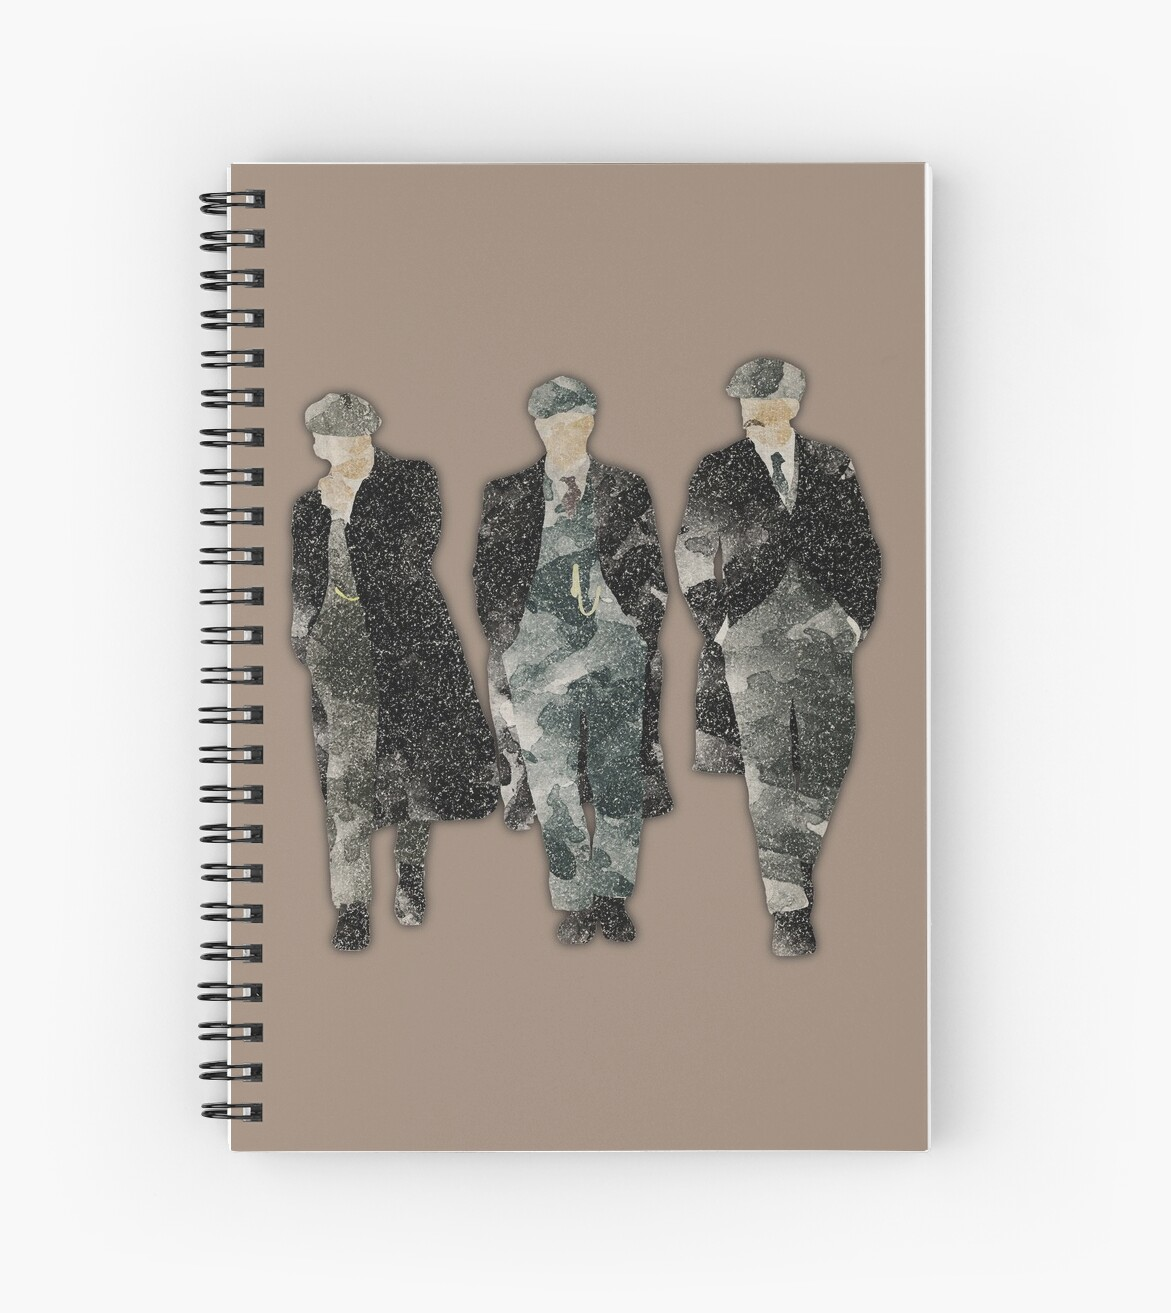 bc4f6ef68 John Shelby, Tommy Shelby, Arthur Shelby from Peaky Blinders by fishercraft